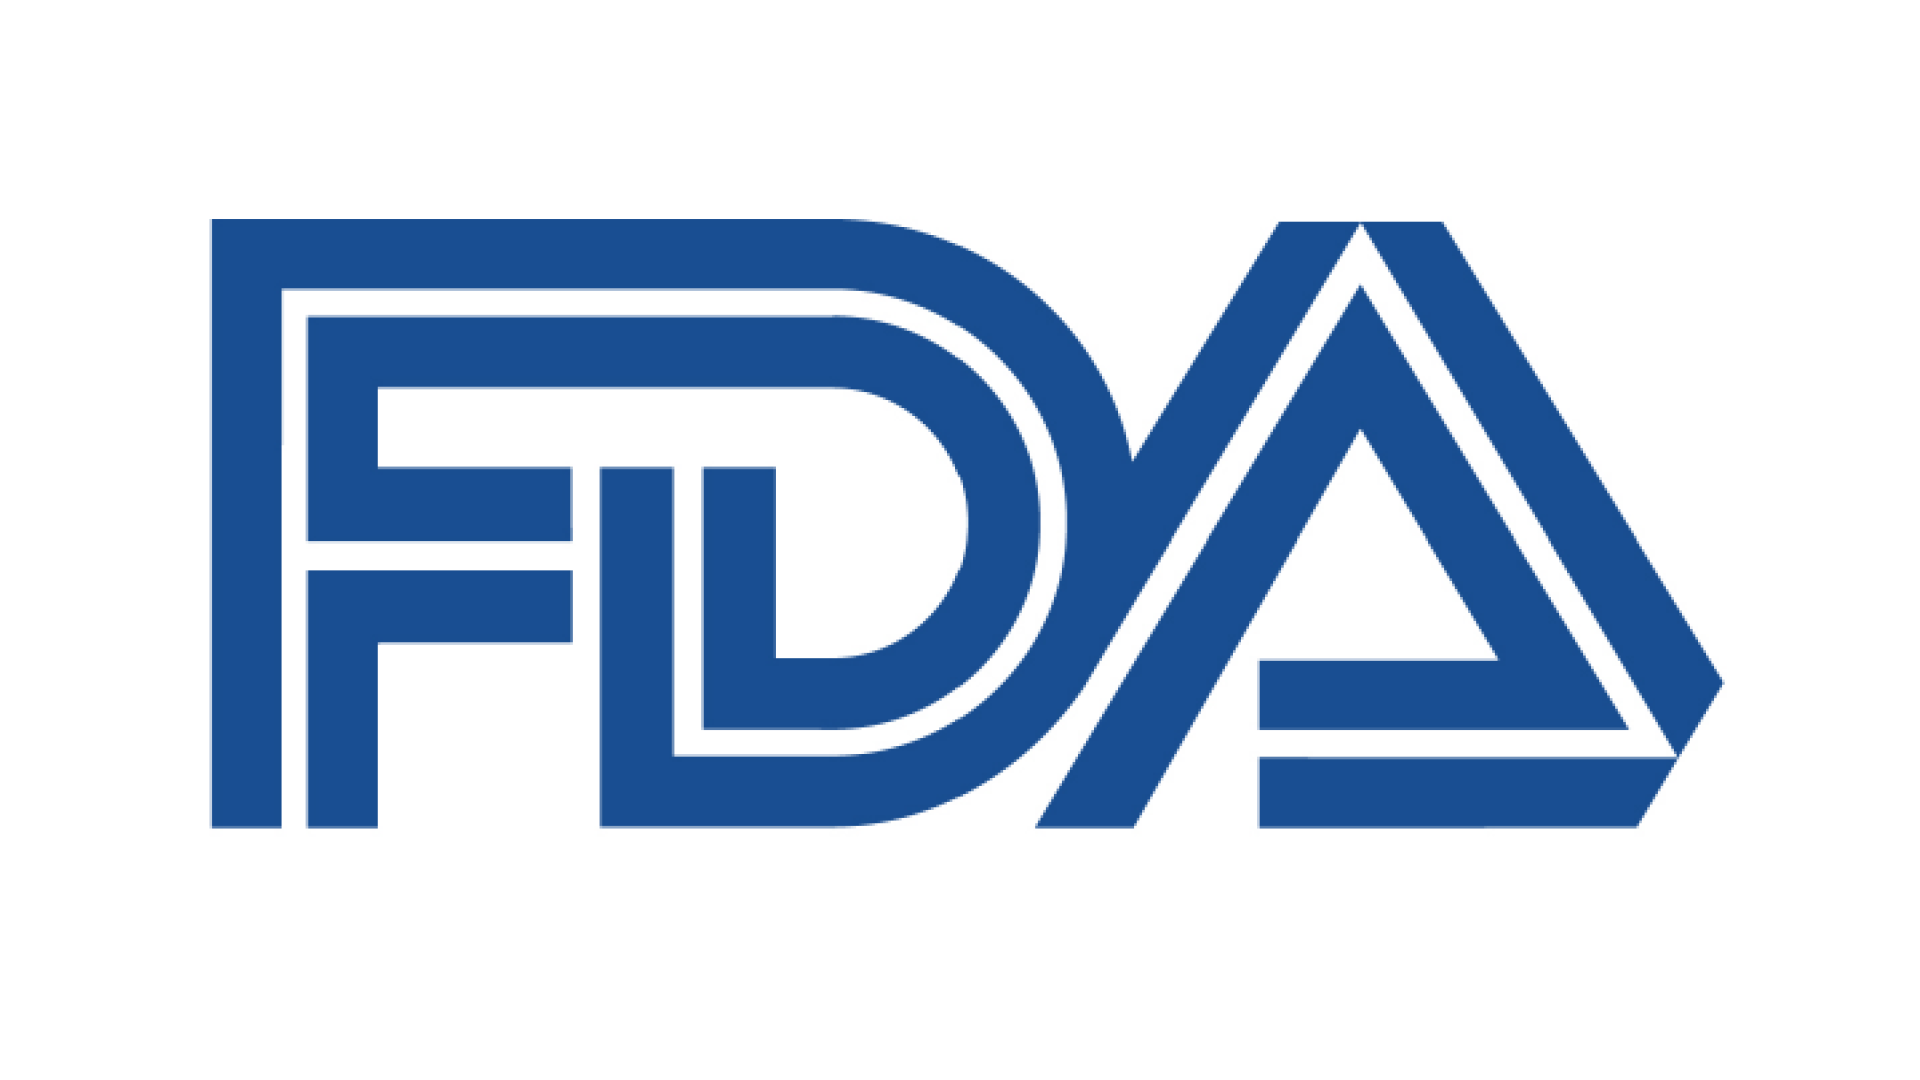 FDA to Issue Final Decision on Quality System Regs Via 'Very Public Notification'